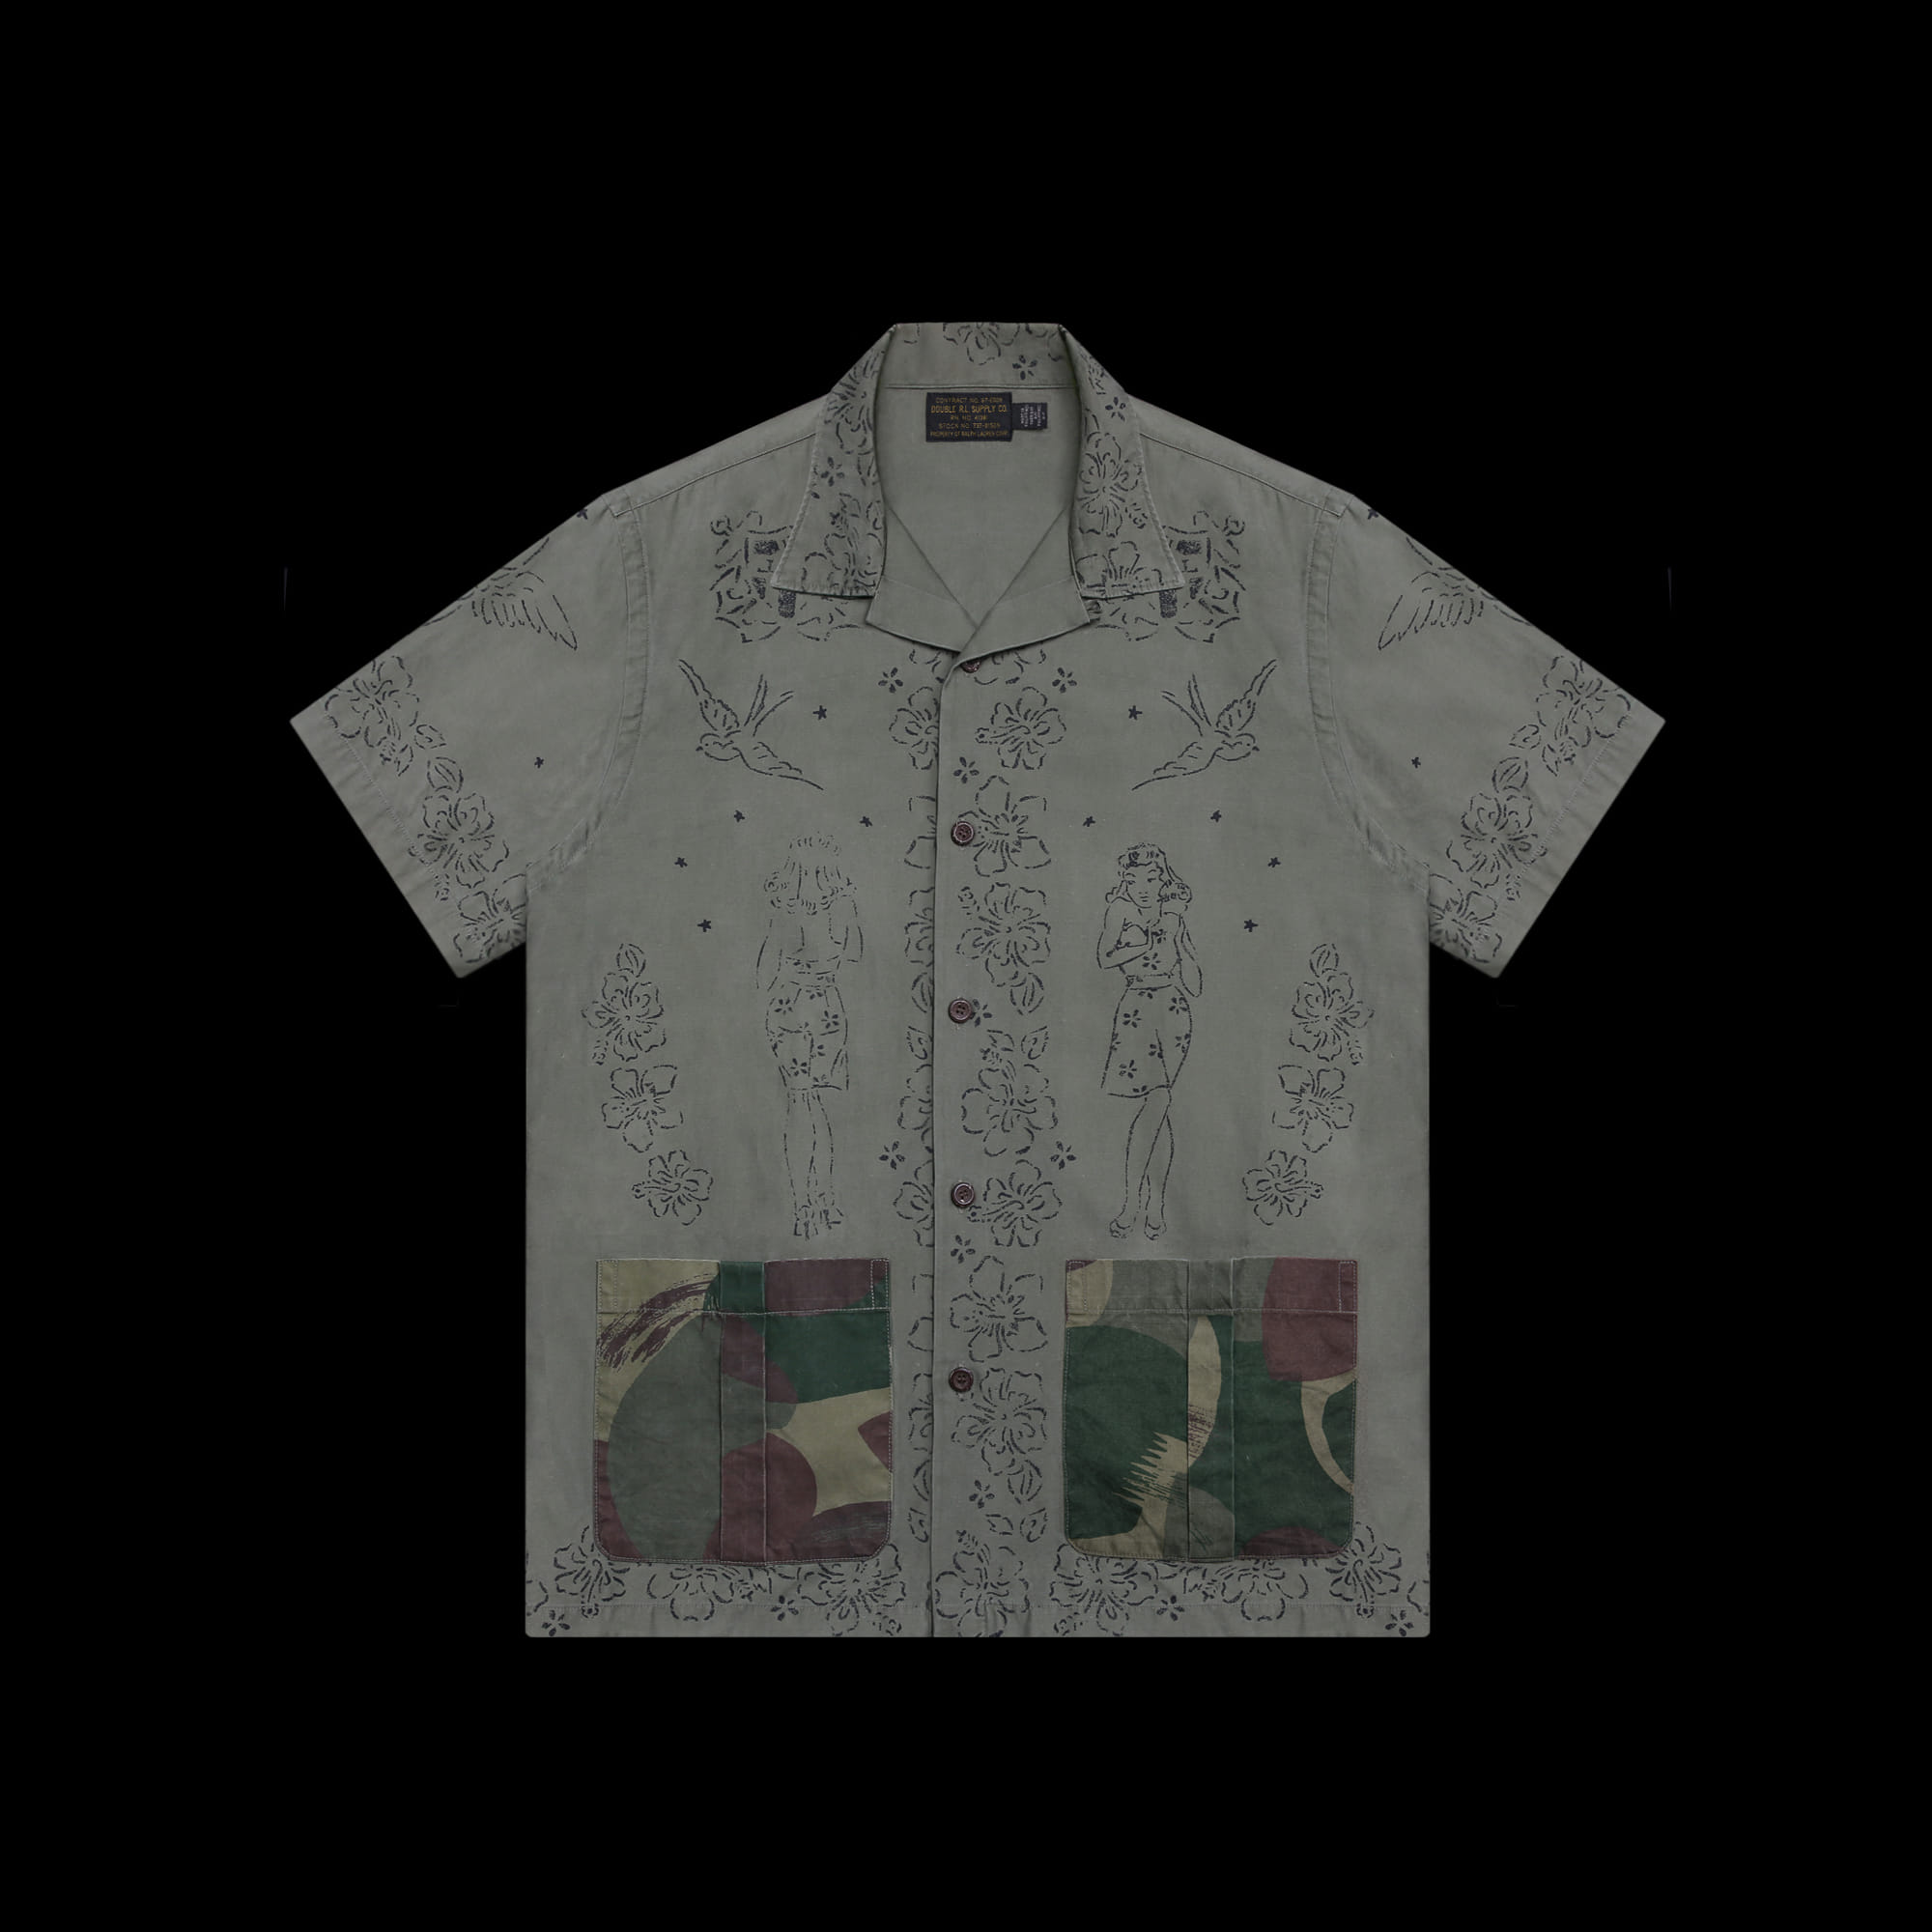 RRLLIMITED EDITIONTRENCH ART GRAPHIC SHIRT